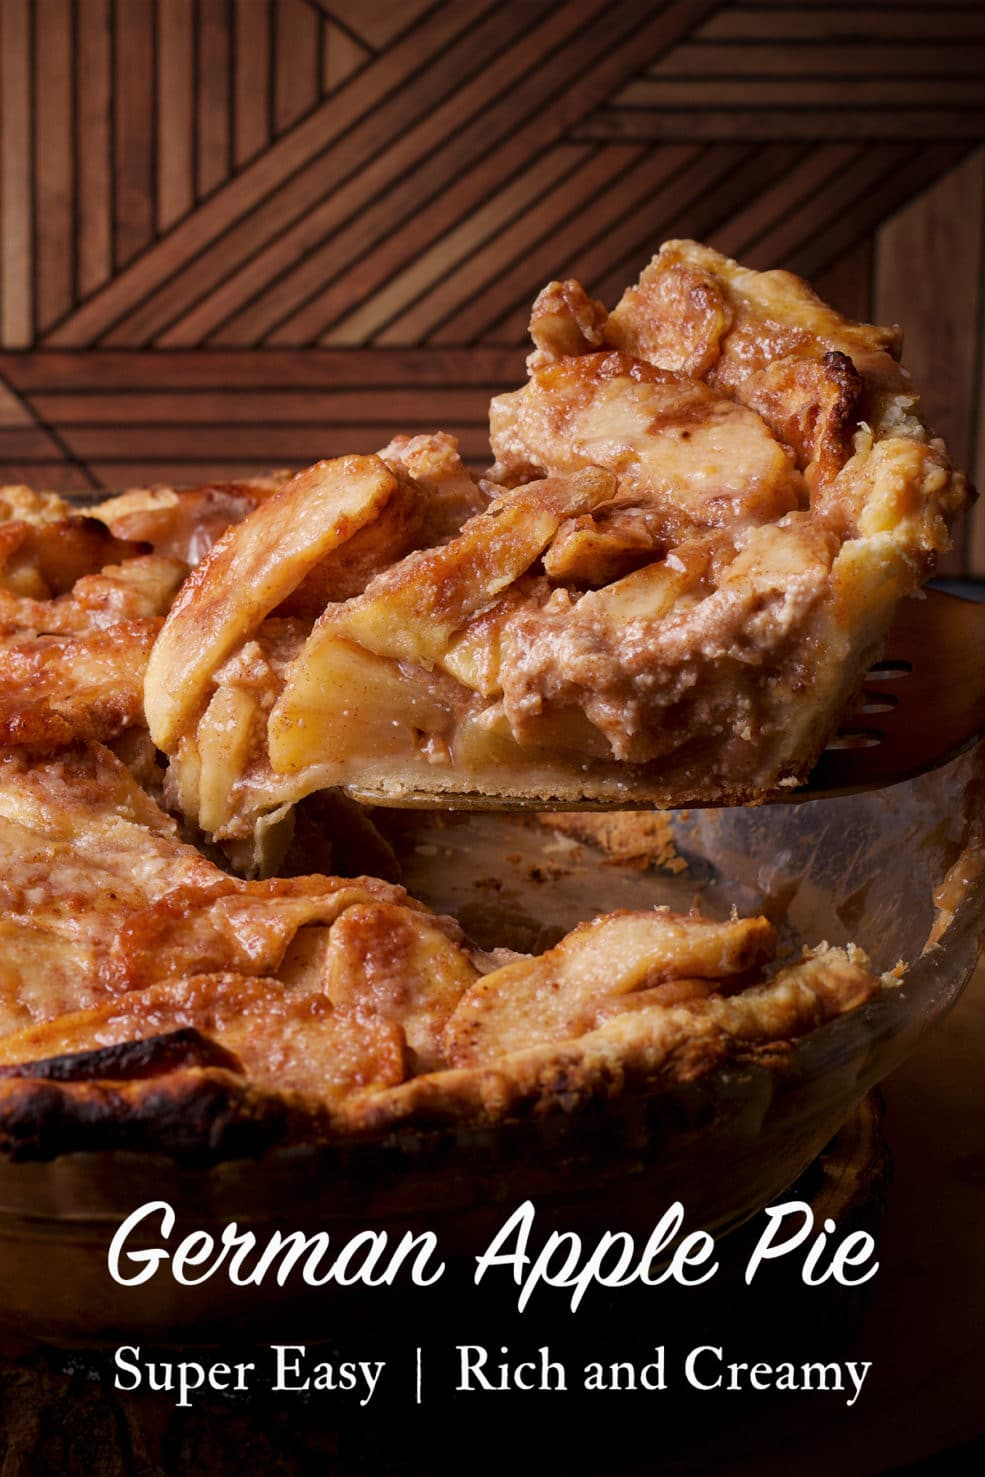 Using a spatula to lift a slice of German apple pie from the whole pie.